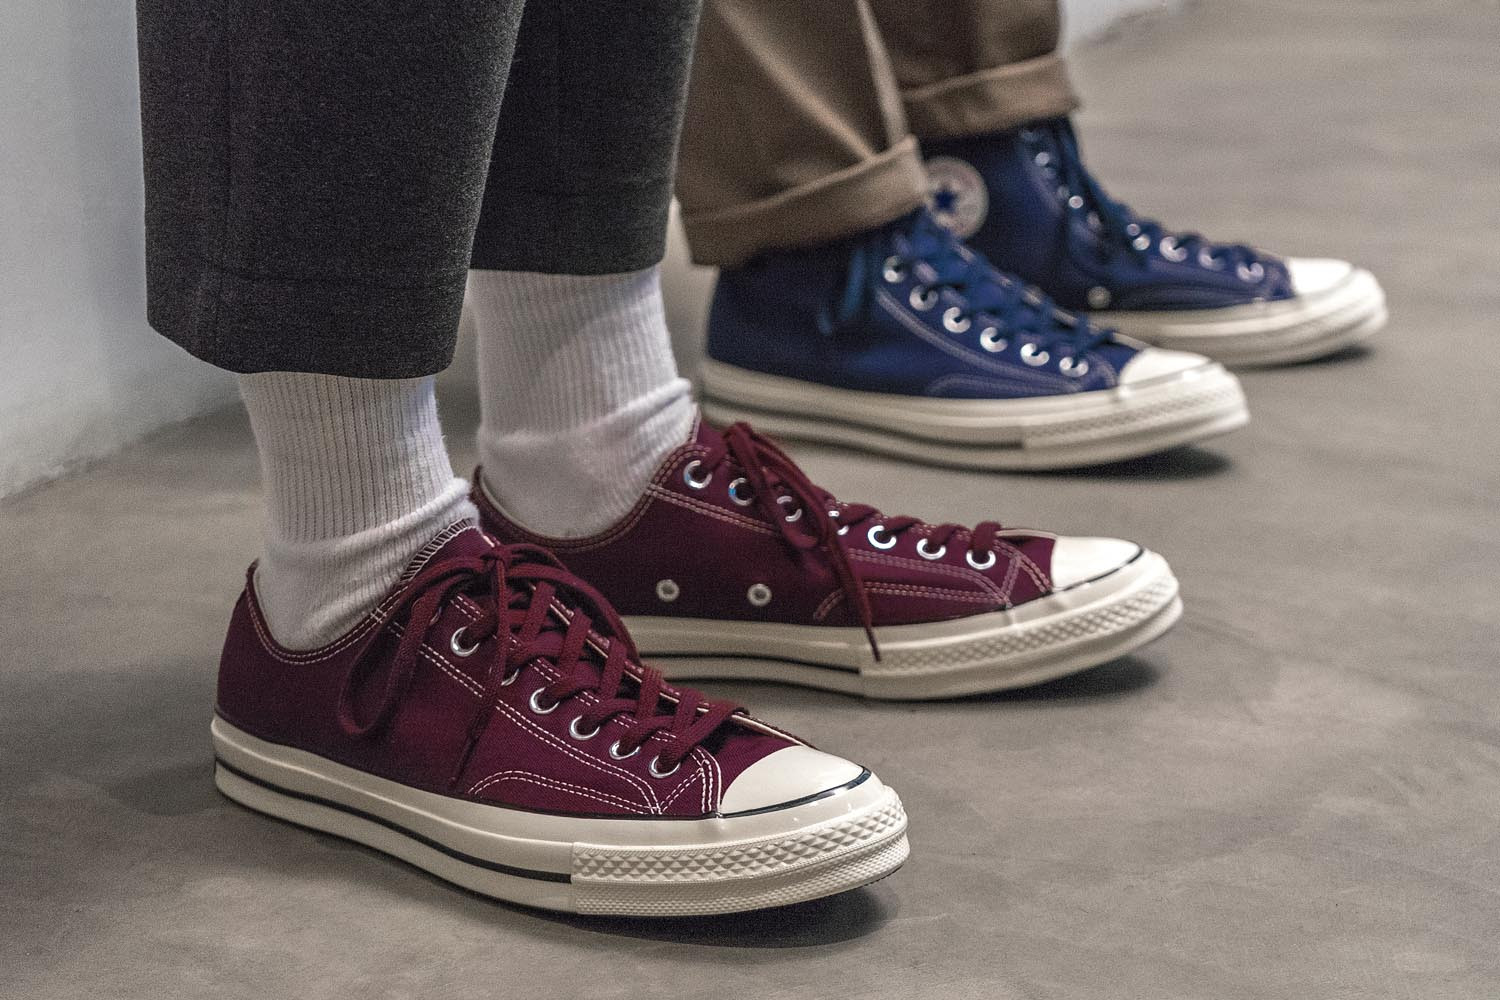 Converse Chuck Taylor All Star '70 New Colorways